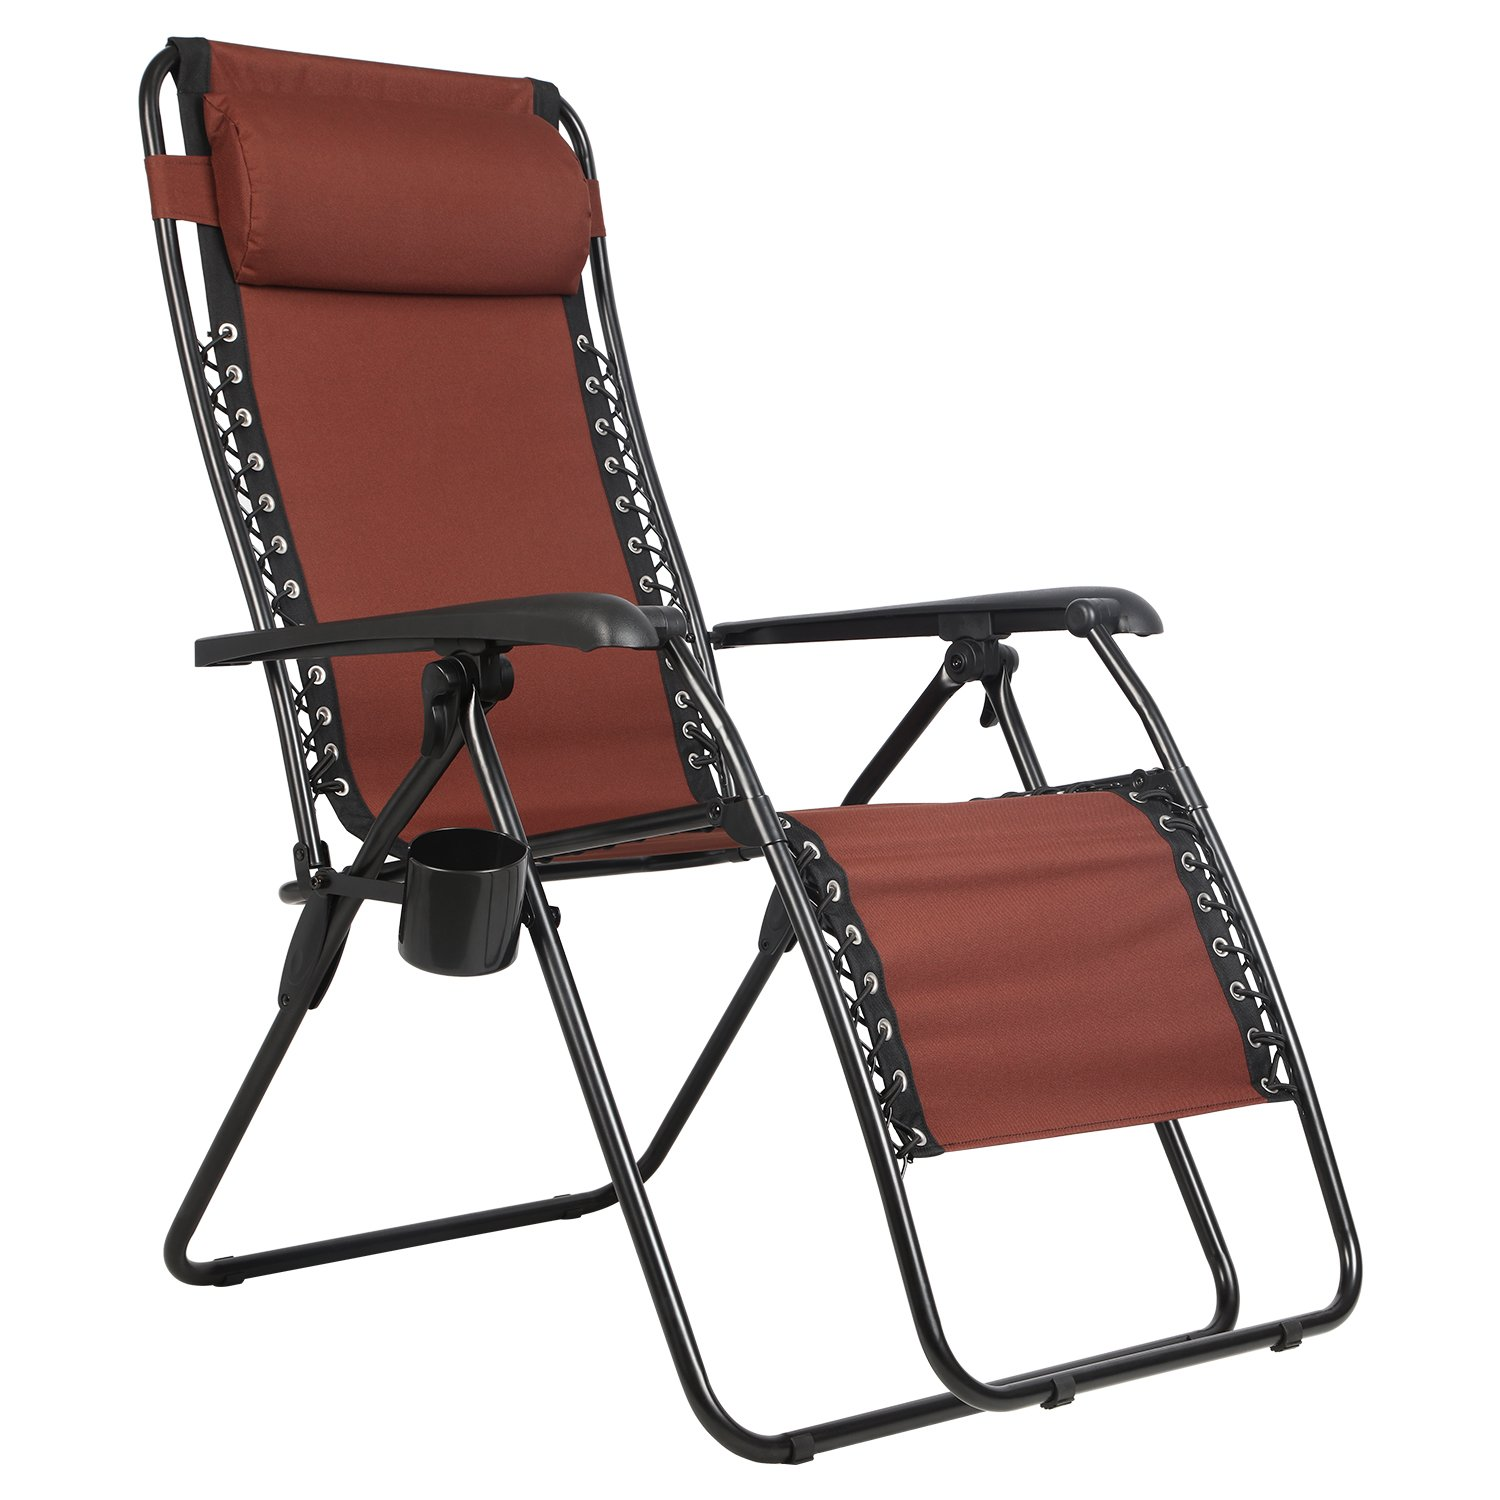 PORTAL Zero Gravity Recliner Lounge Chair, Folding Patio Lawn Pool Chair with Headrest Cup Holder, Support 300lbs, Brown by PORTAL